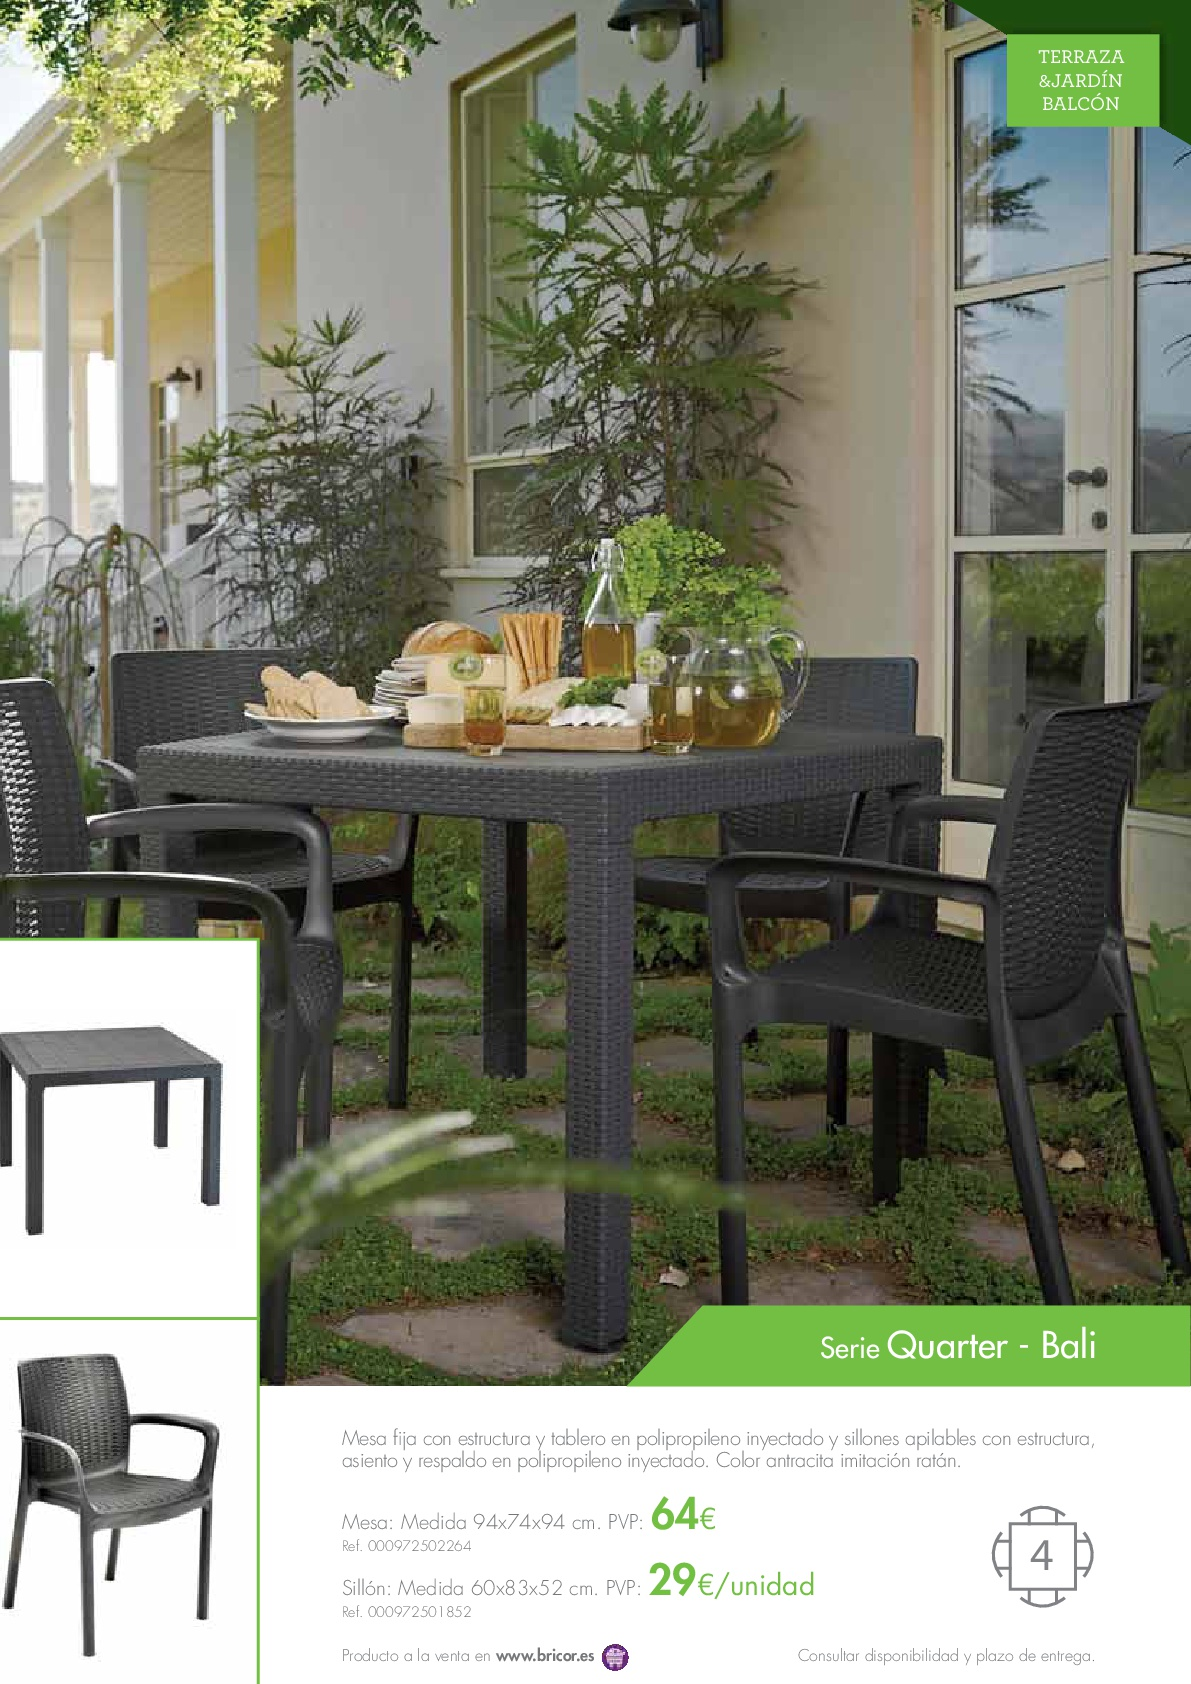 Bricor muebles jardin 201619 revista muebles for Muebles jardin diseno